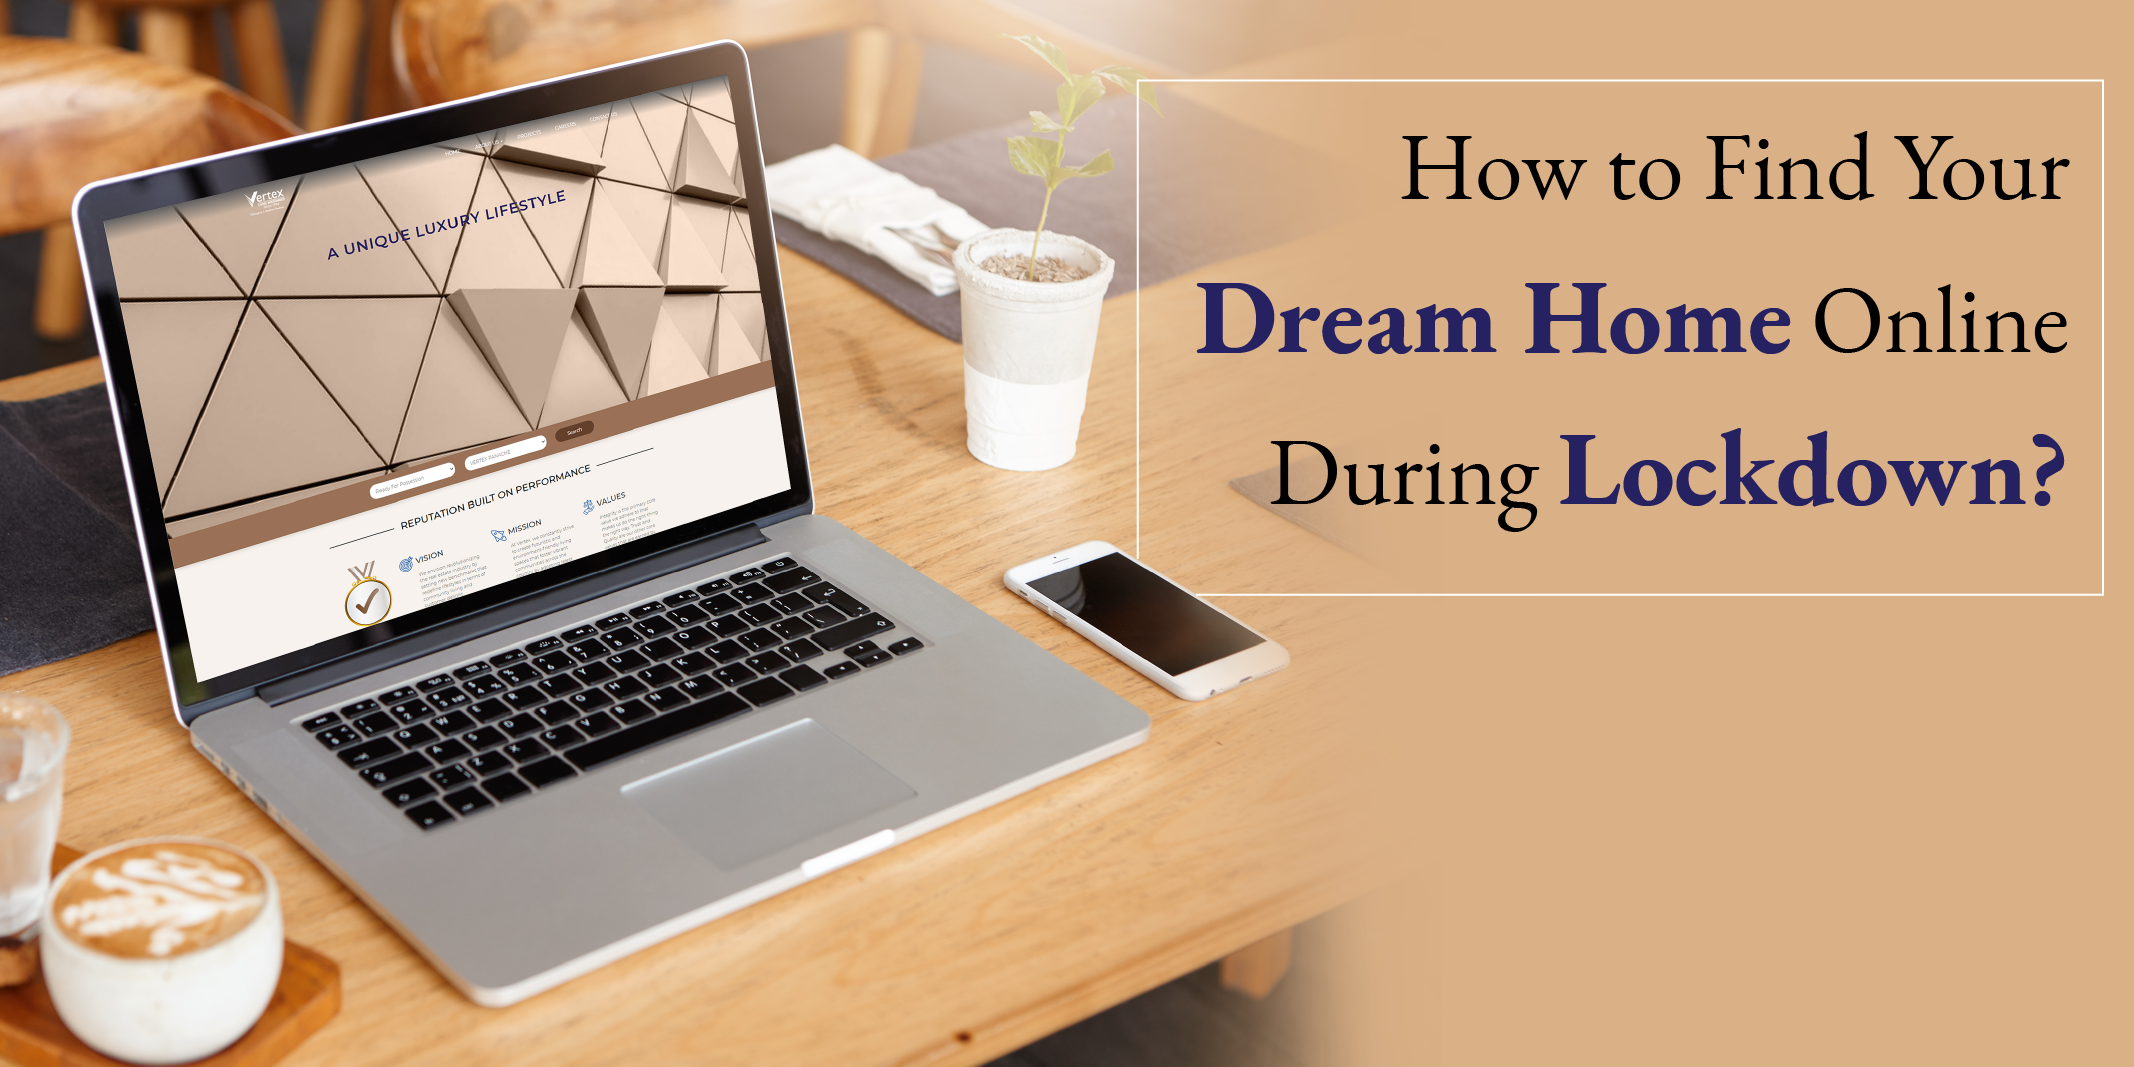 How to Find Your Dream Home Online During Lockdown